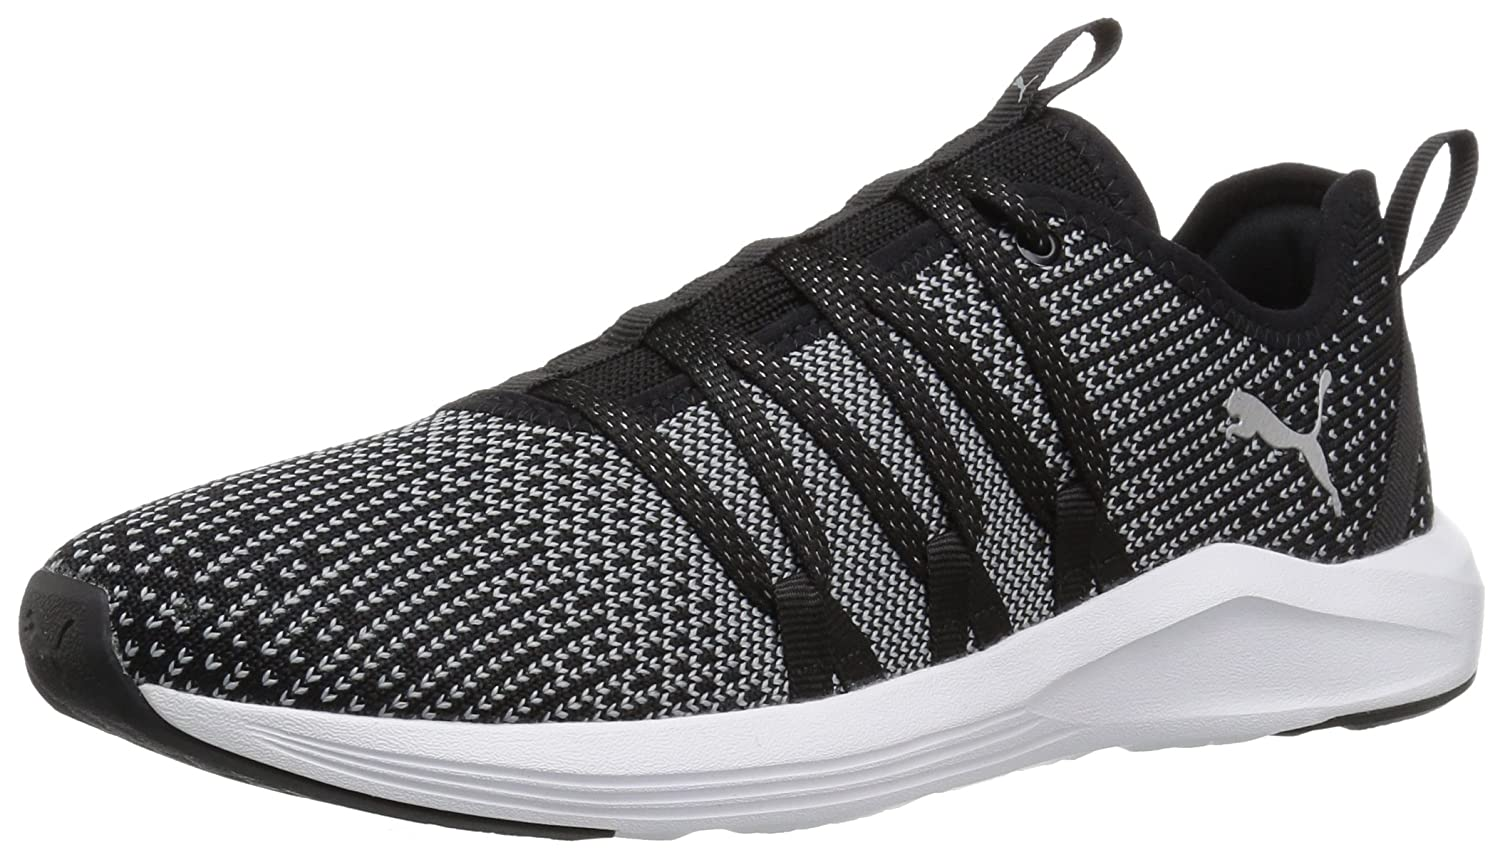 PUMA Women's Prowl Alt Knit Wn Sneaker B07537GC8W 9 B(M) US|Puma Black-puma White